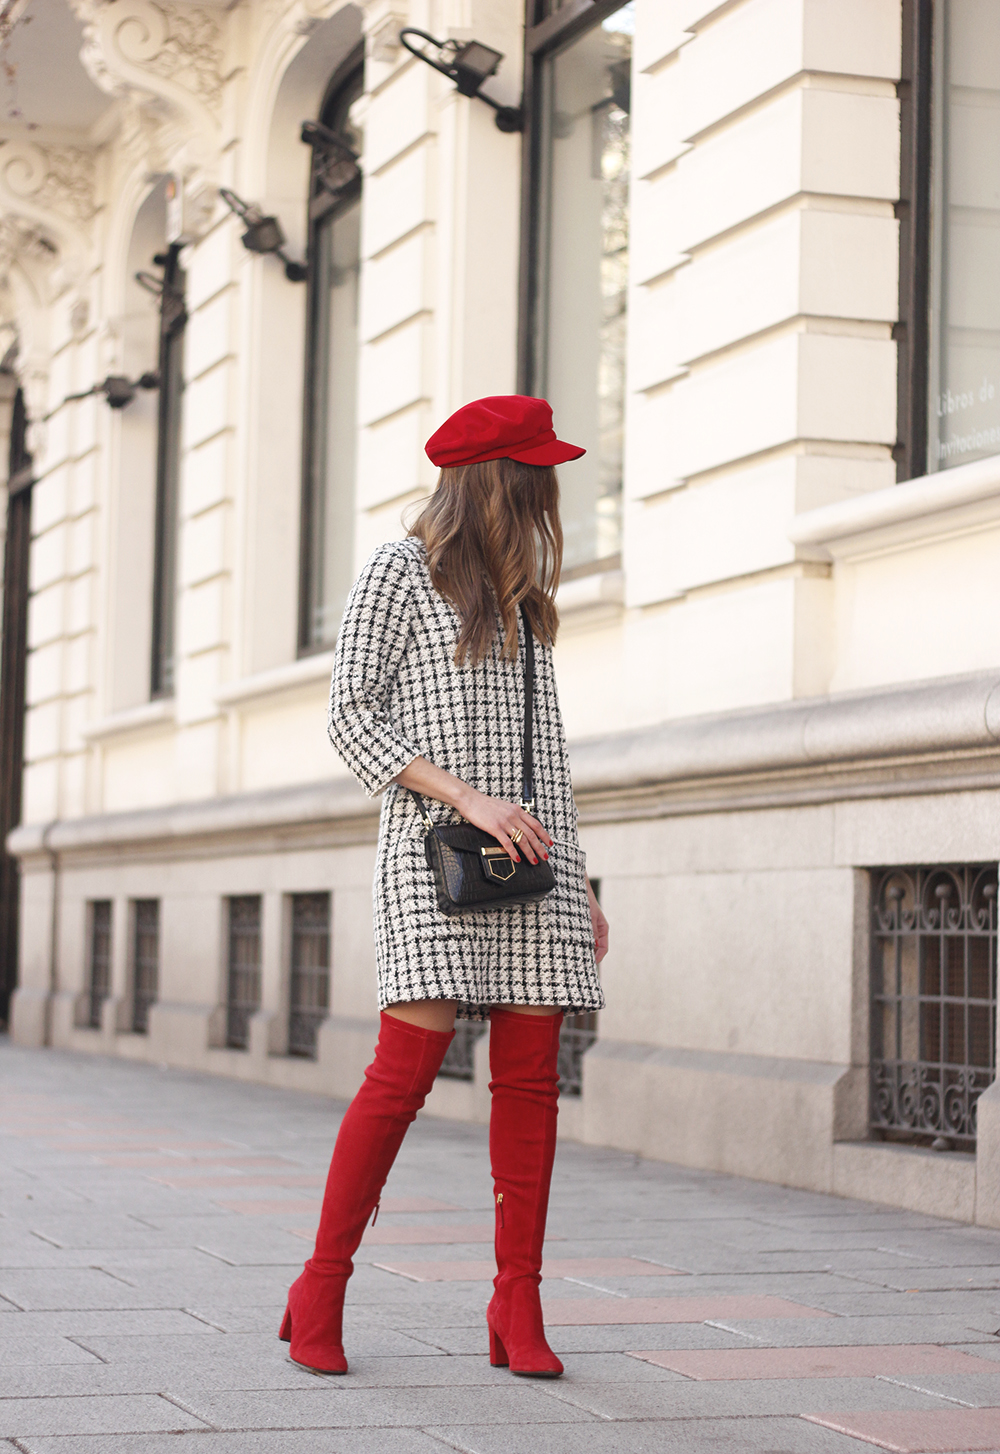 squares dress red over the knee boots givenchy bag red cap winter outfit look invierno06